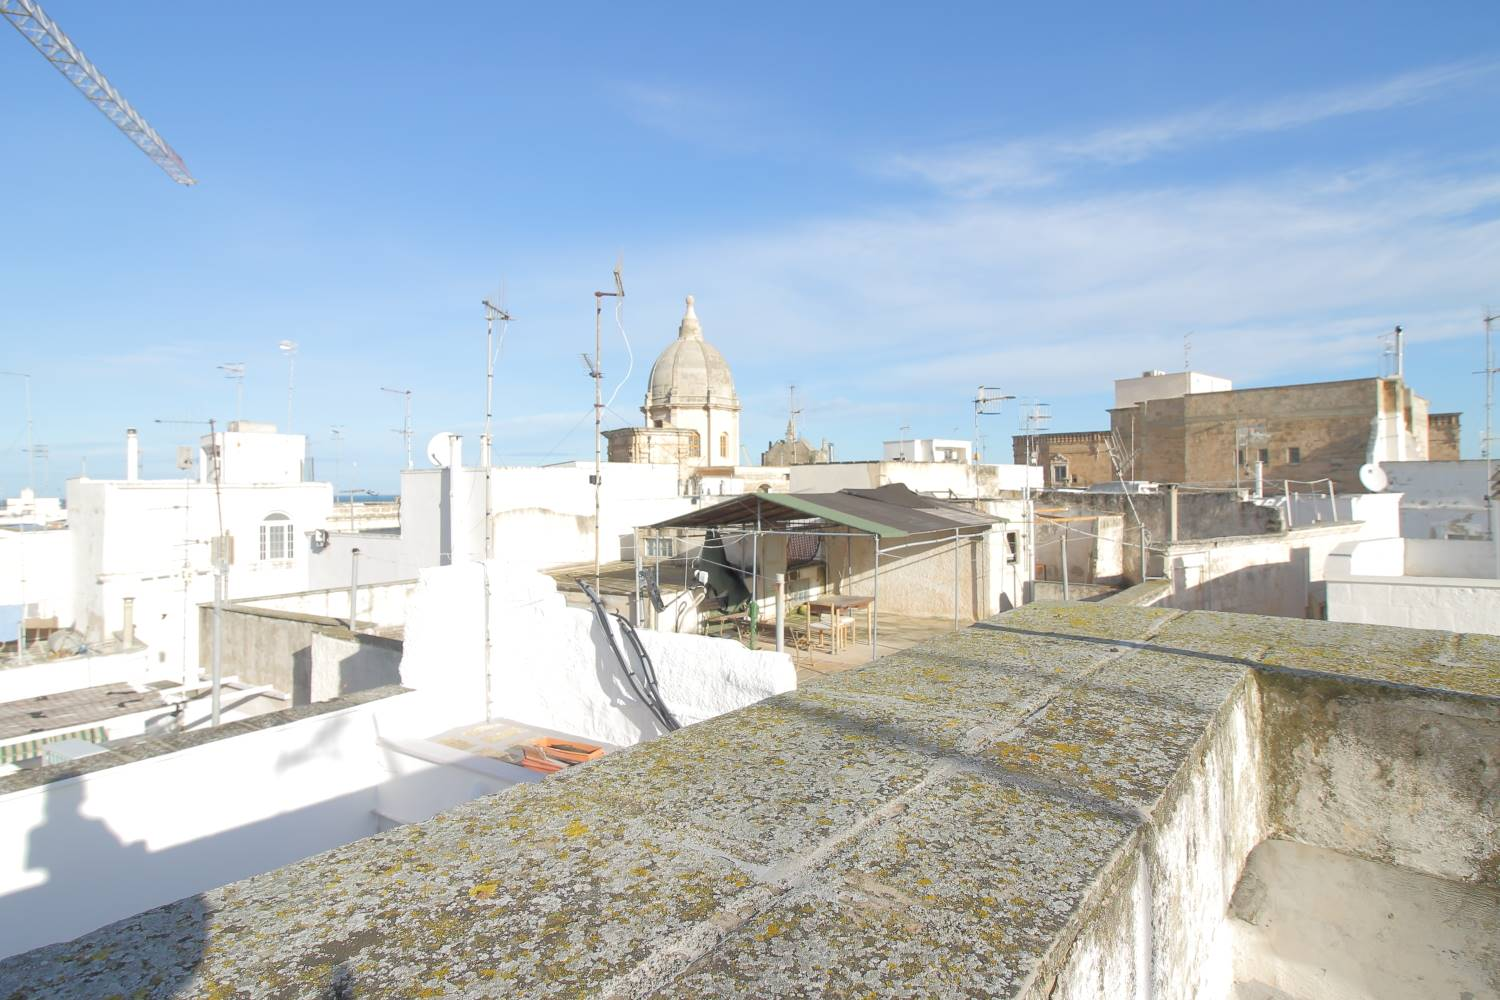 MONOPOLI, Apartment for sale of 90 Sq. mt., Habitable, Heating Individual heating system, Energetic class: G, Epi: 165 kwh/m2 year, placed at 1°, composed by: 3 Rooms, Separate kitchen, , 2 Bedrooms,